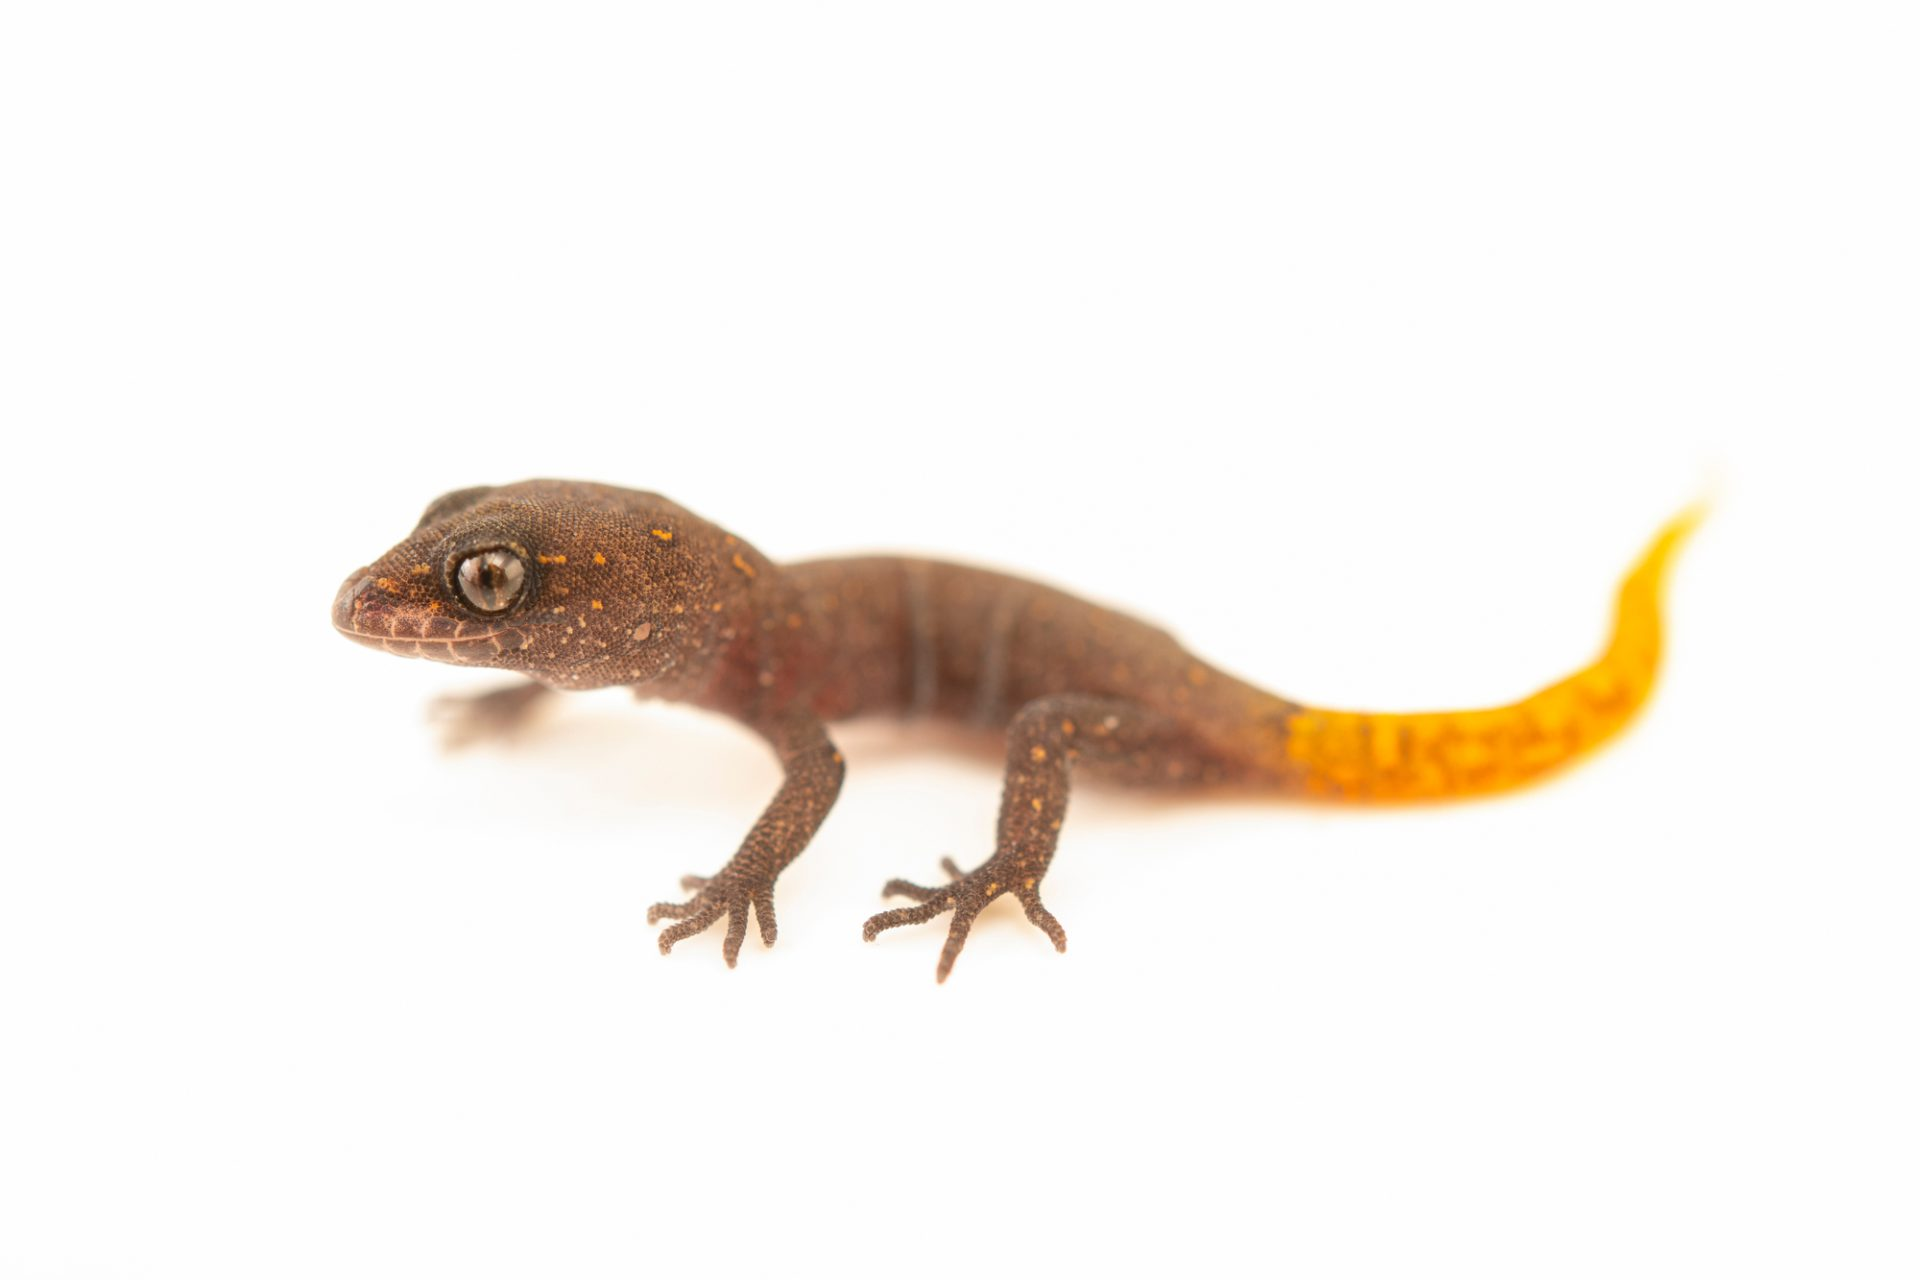 Photo: A juvenile Morocco lizard-fingered gecko (Saurodactylus brosseti) from a private collection.